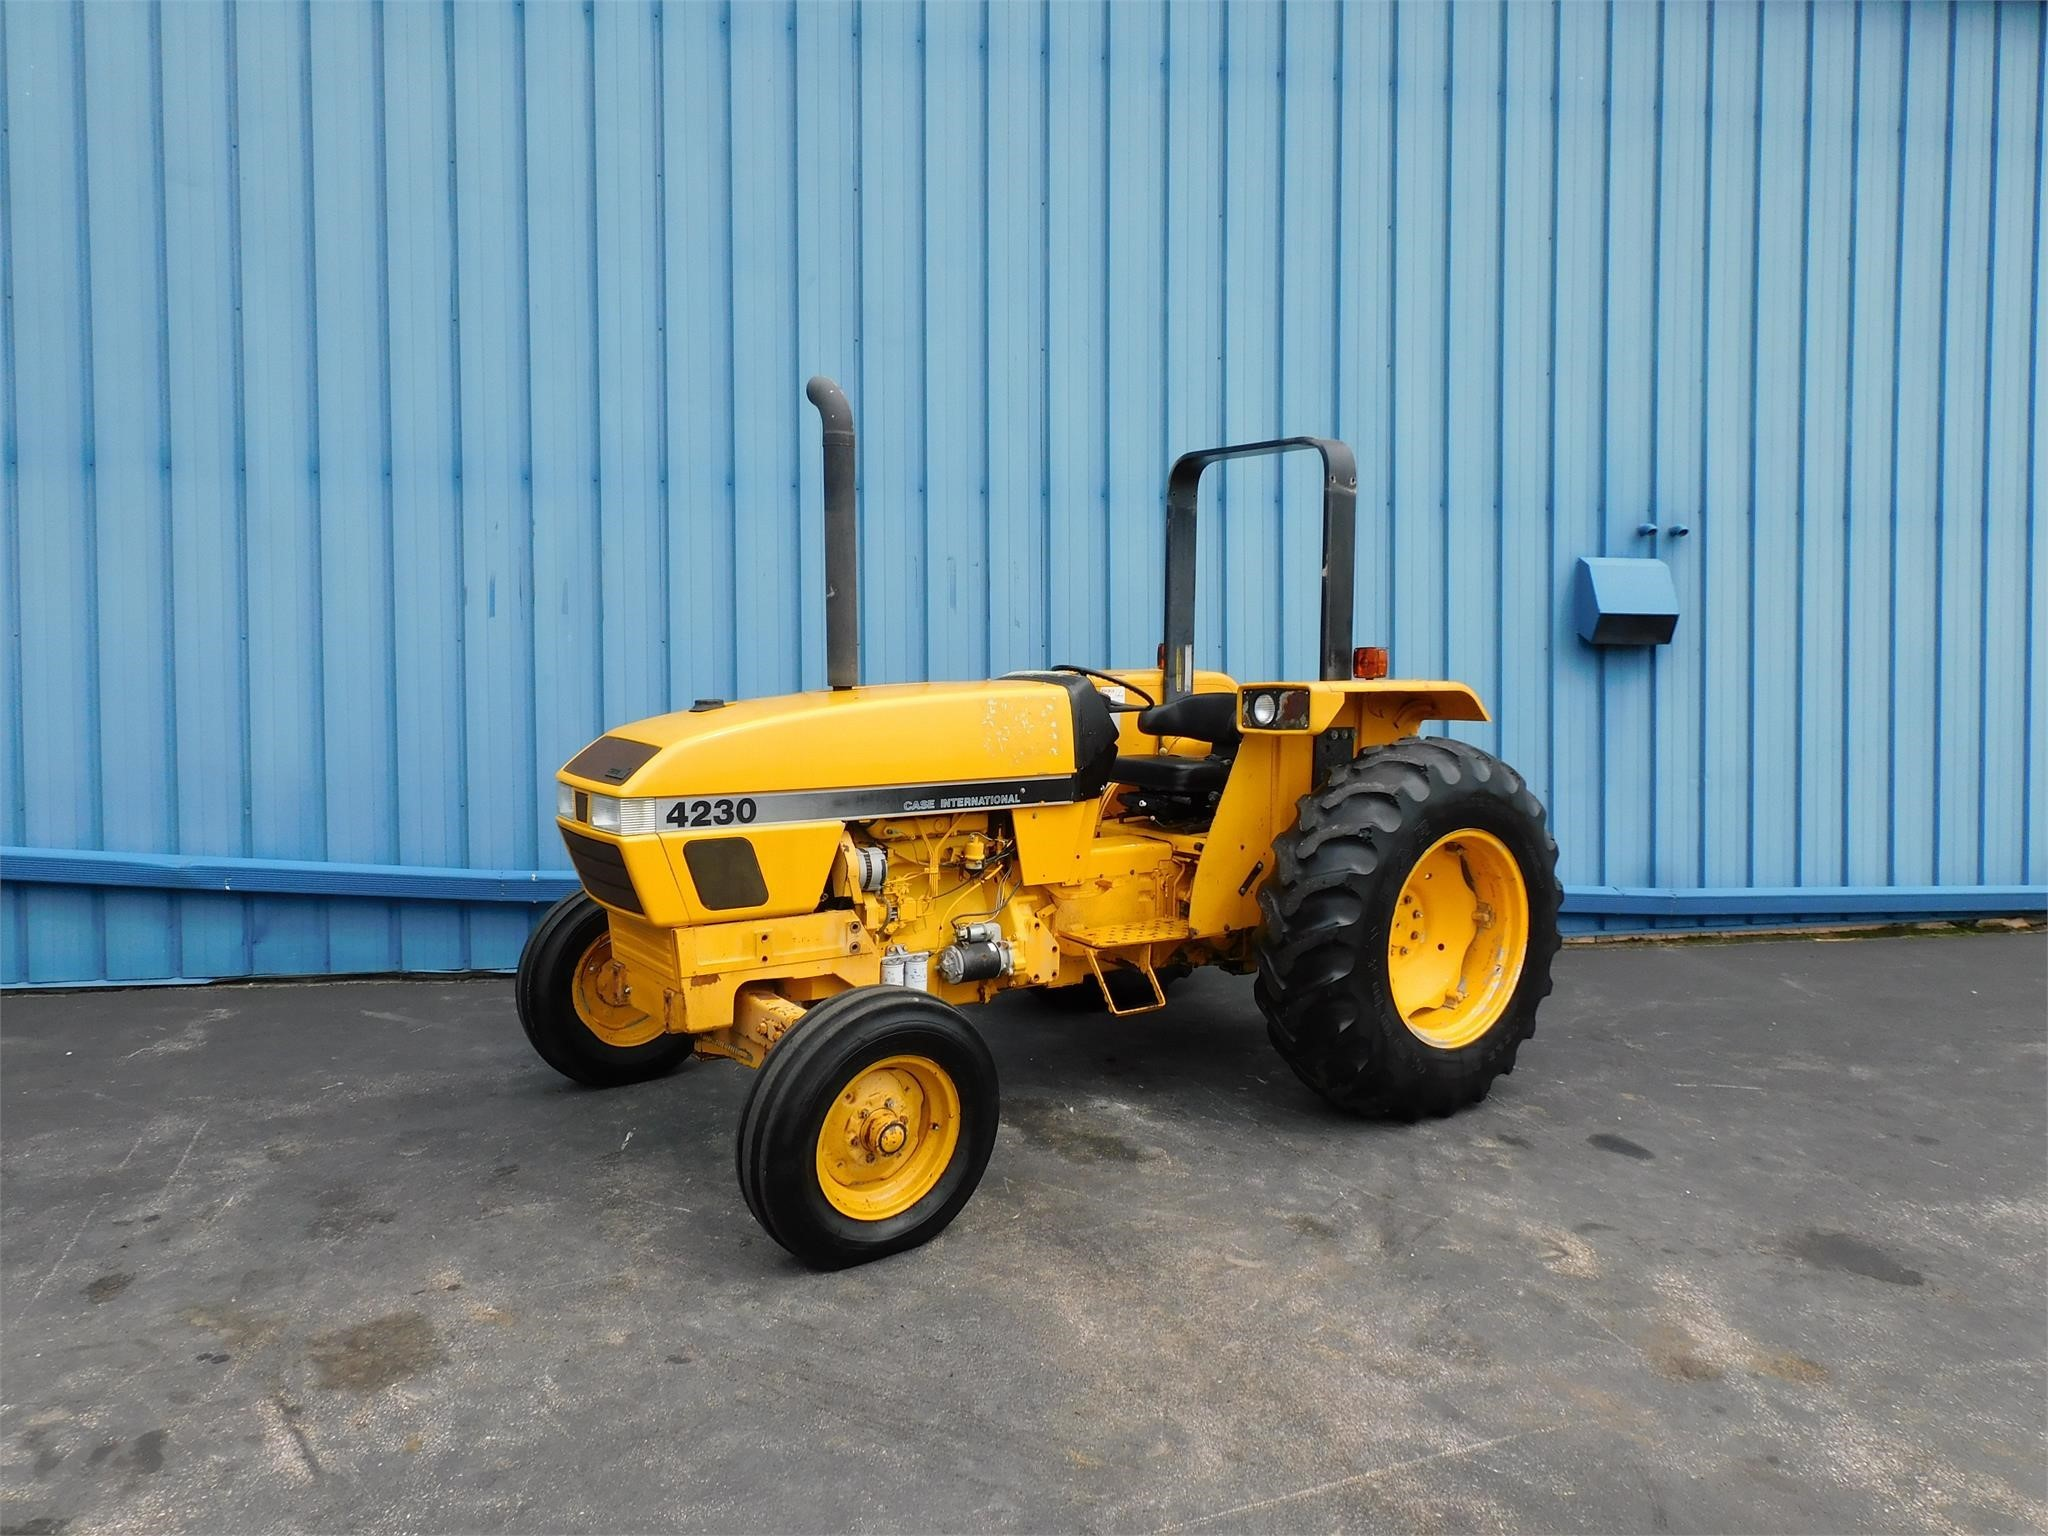 1994 Case IH 4230 Tractor